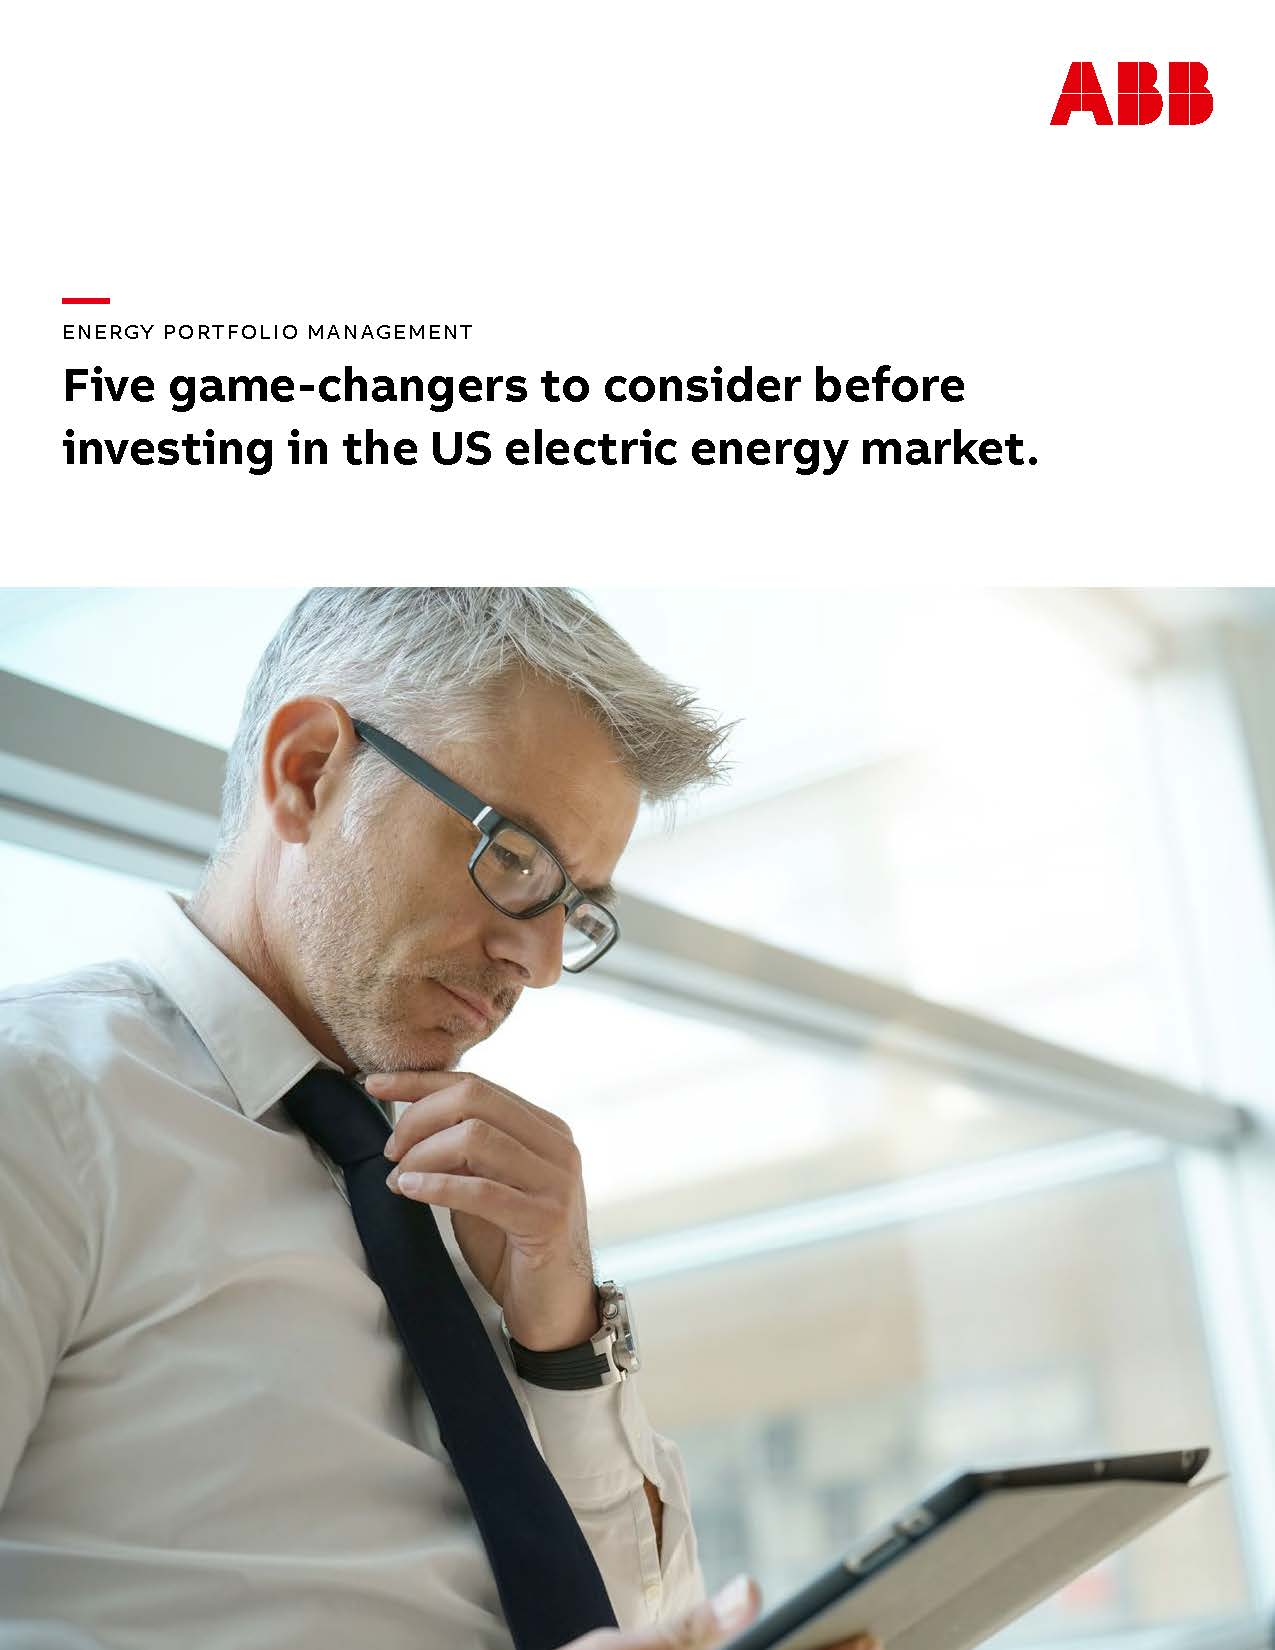 Investing-in-the-US-energy-market_9AKK107046A9494-US-web